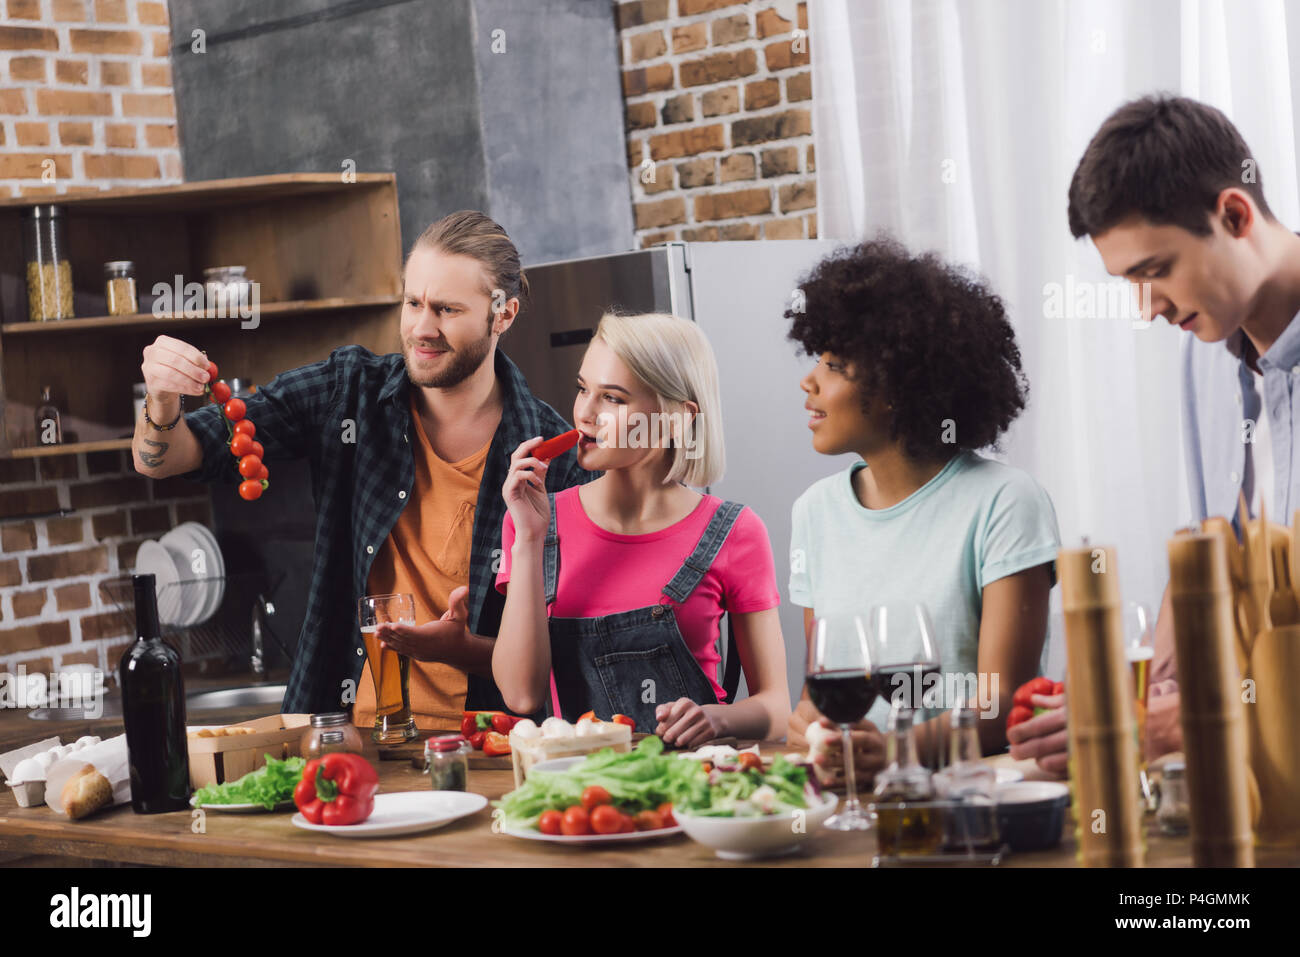 multiethnic friends tasting some food while cooking in kitchen - Stock Image